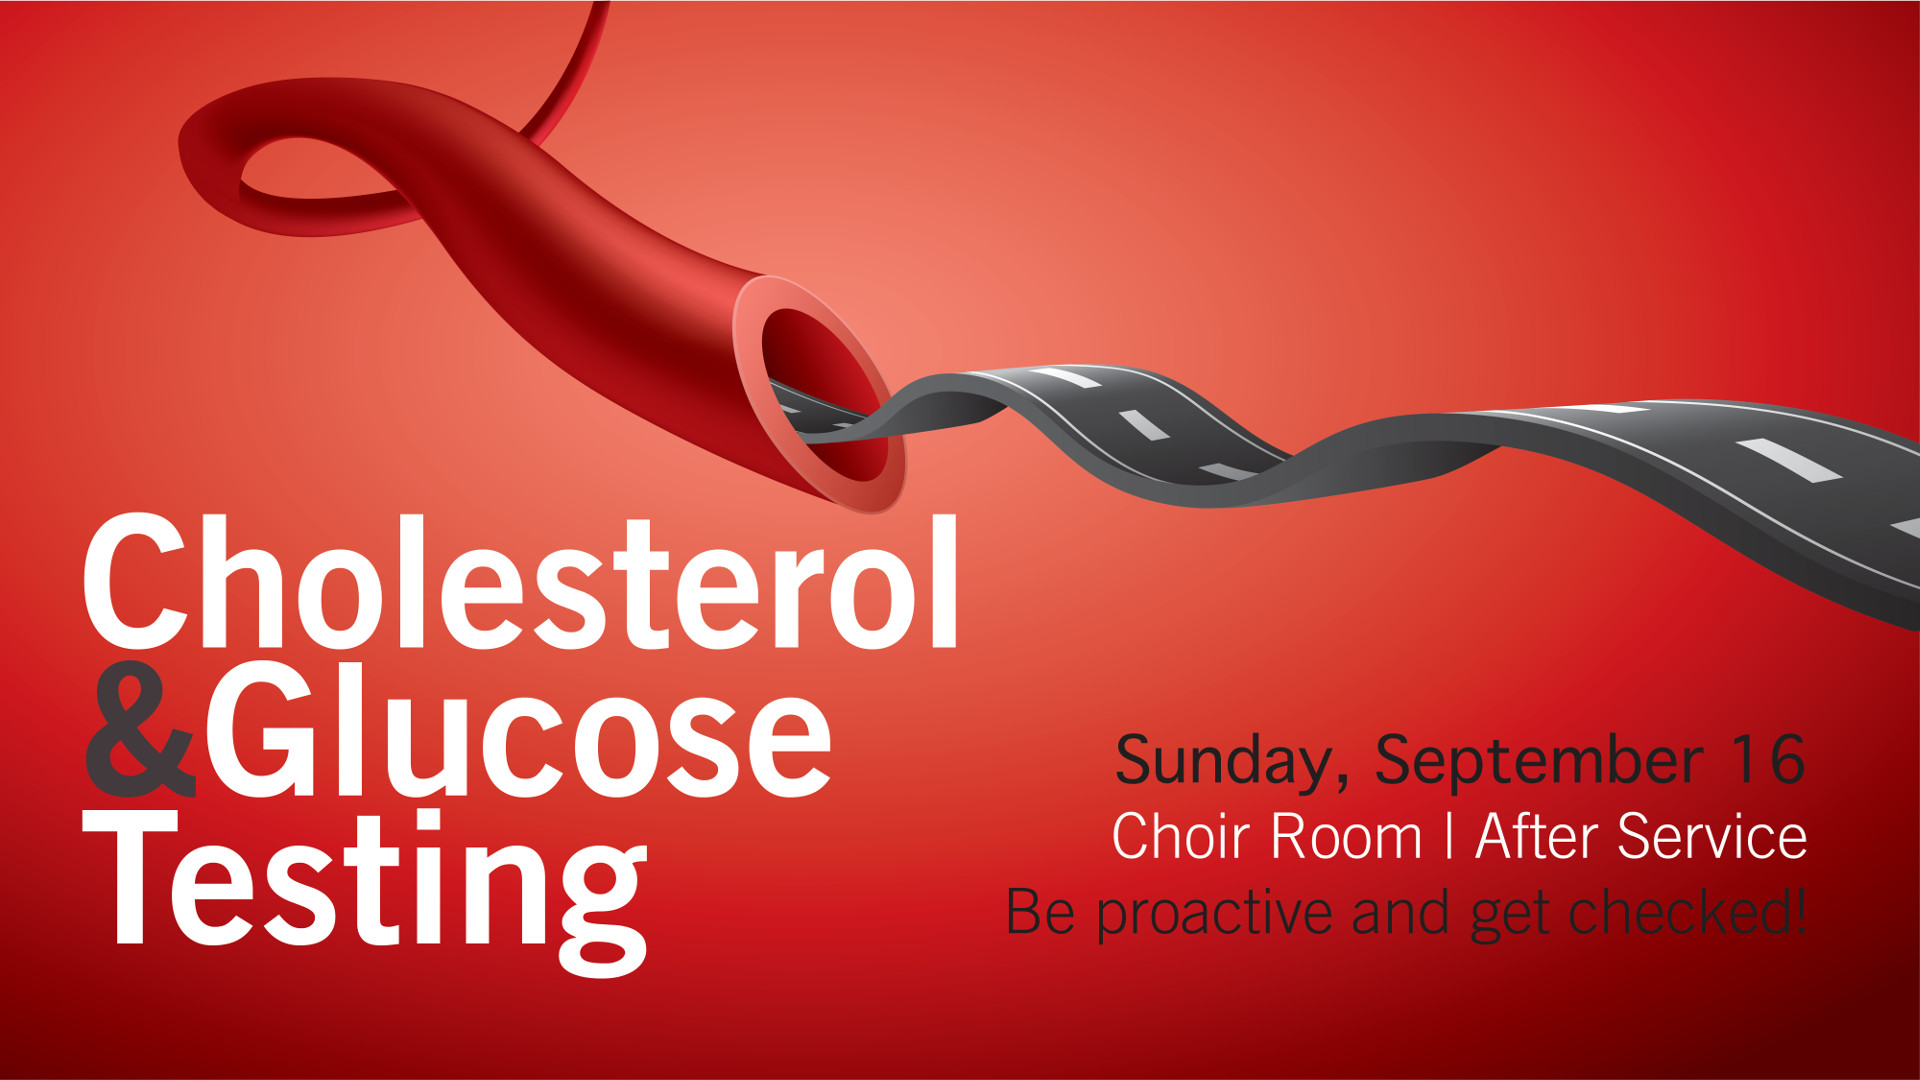 Cholesterol and Glucose Testing